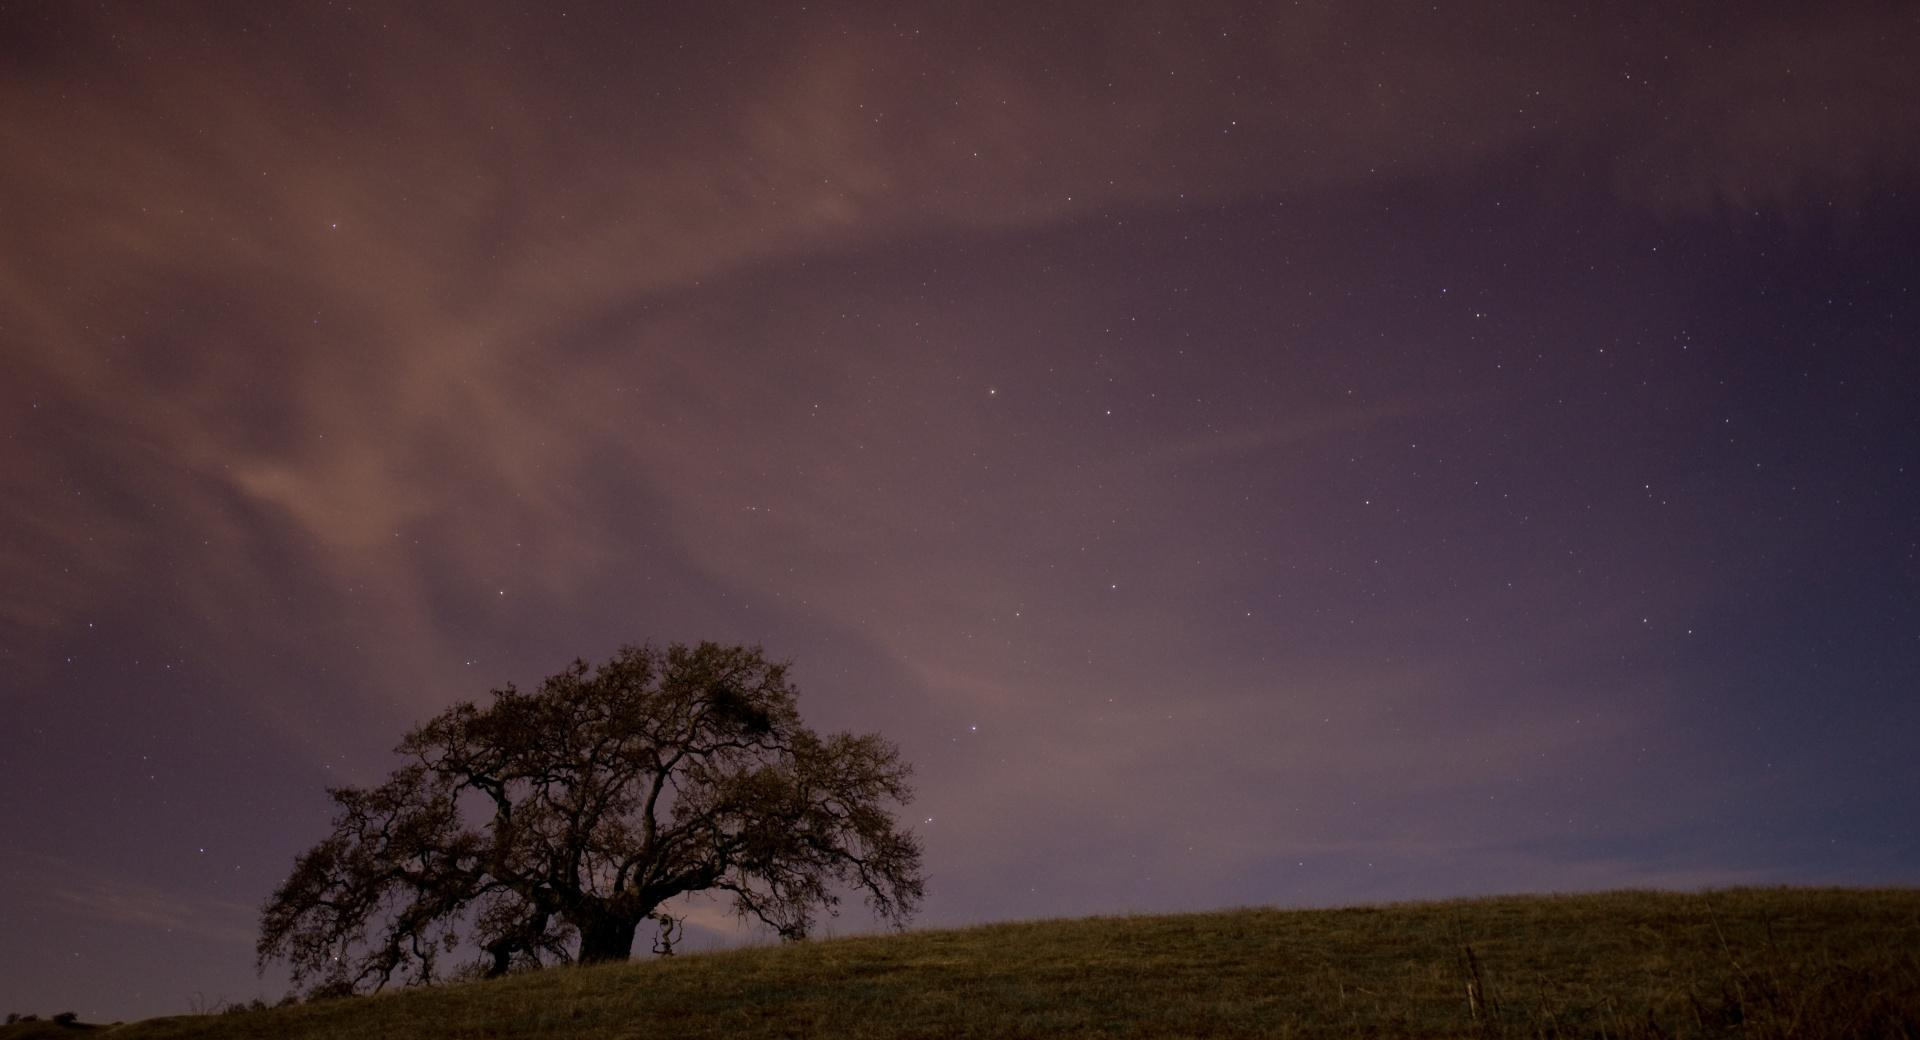 Live Oak At Twilight wallpapers HD quality